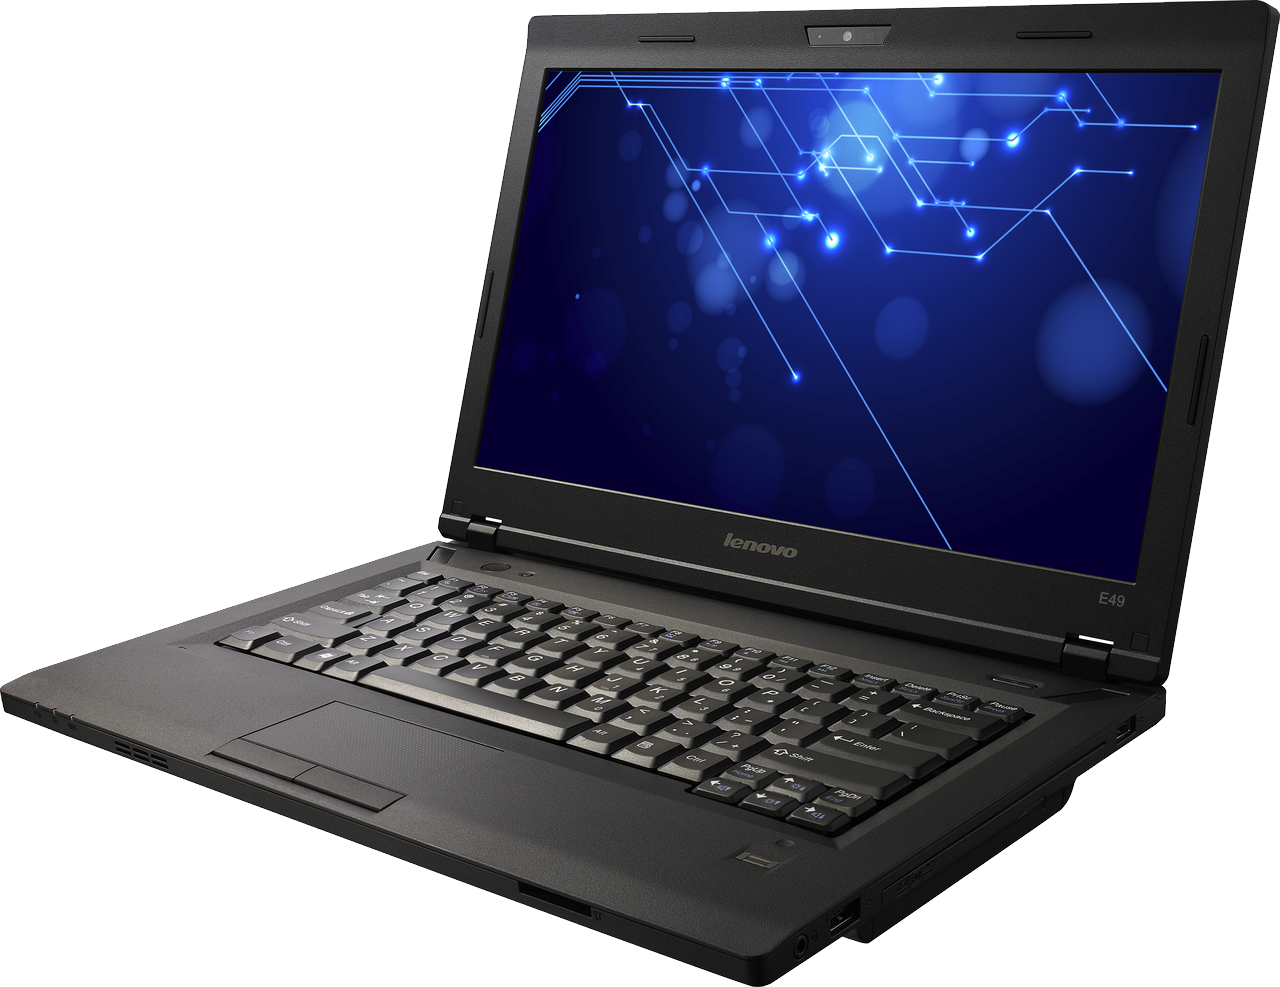 Laptop png image. Notebook